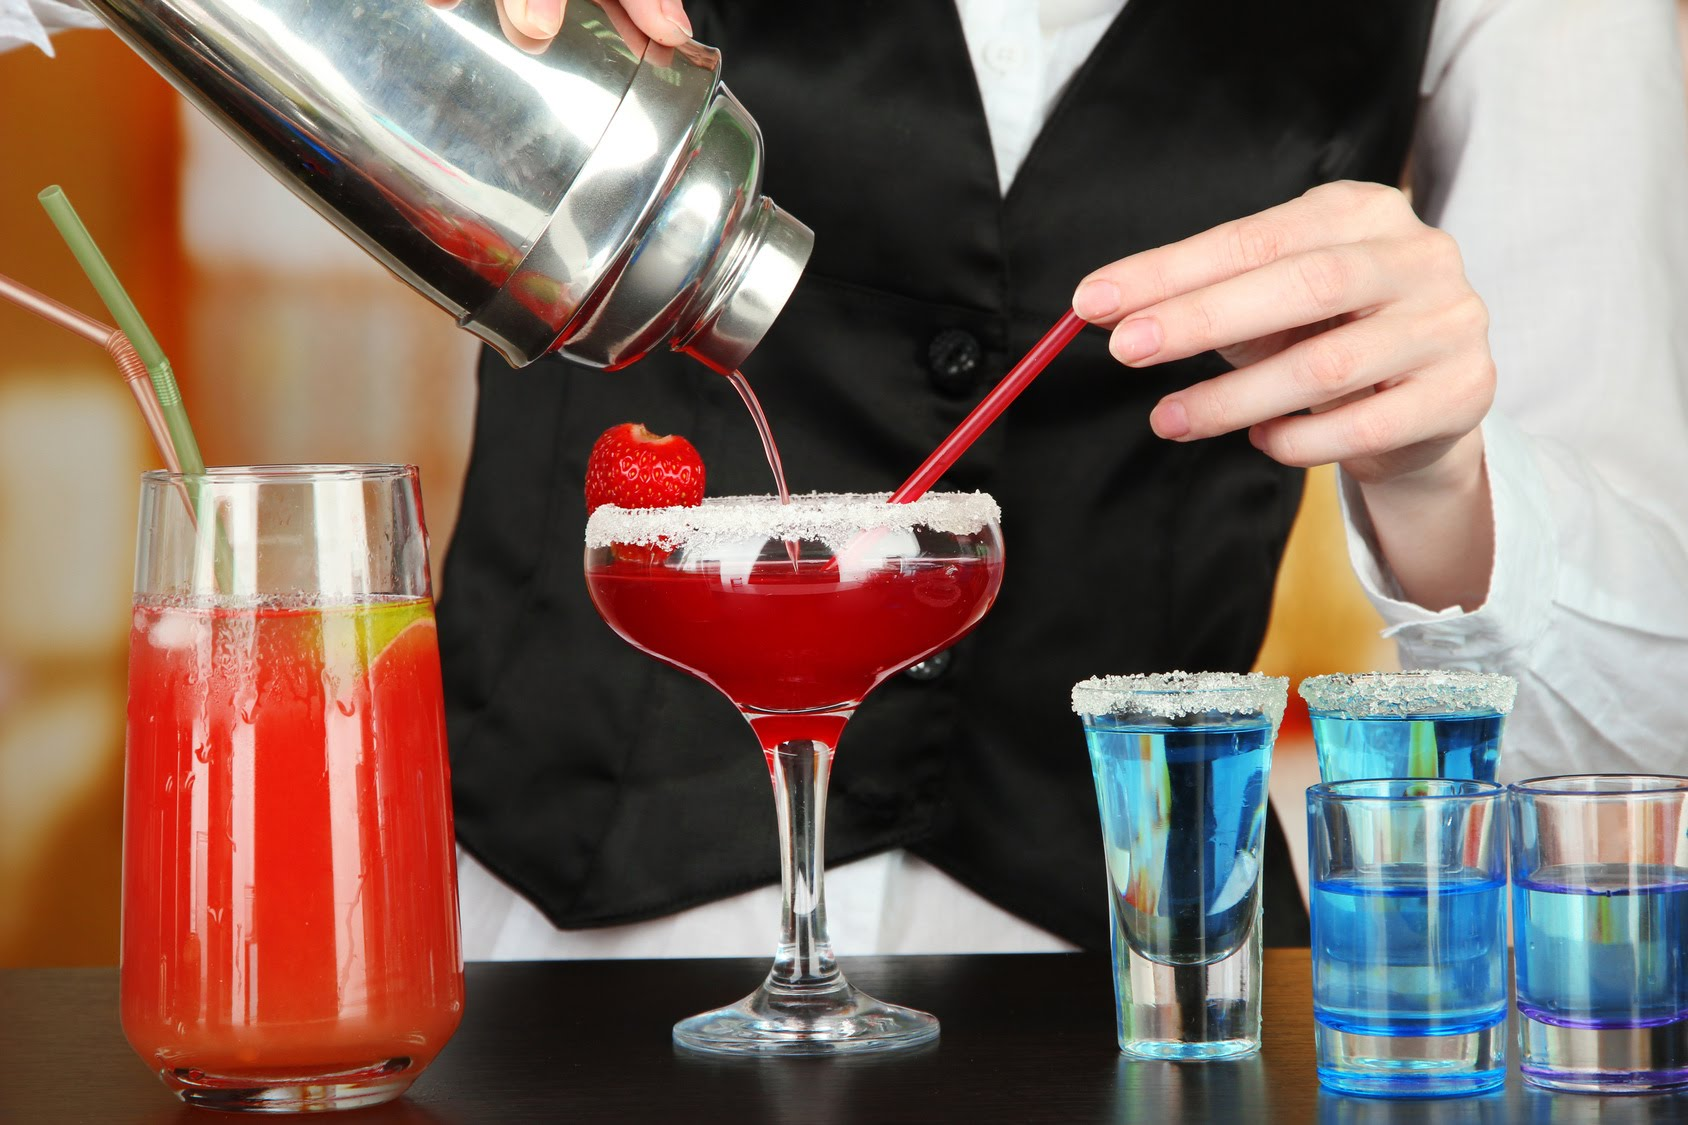 Learn How to Make Cocktails At Home